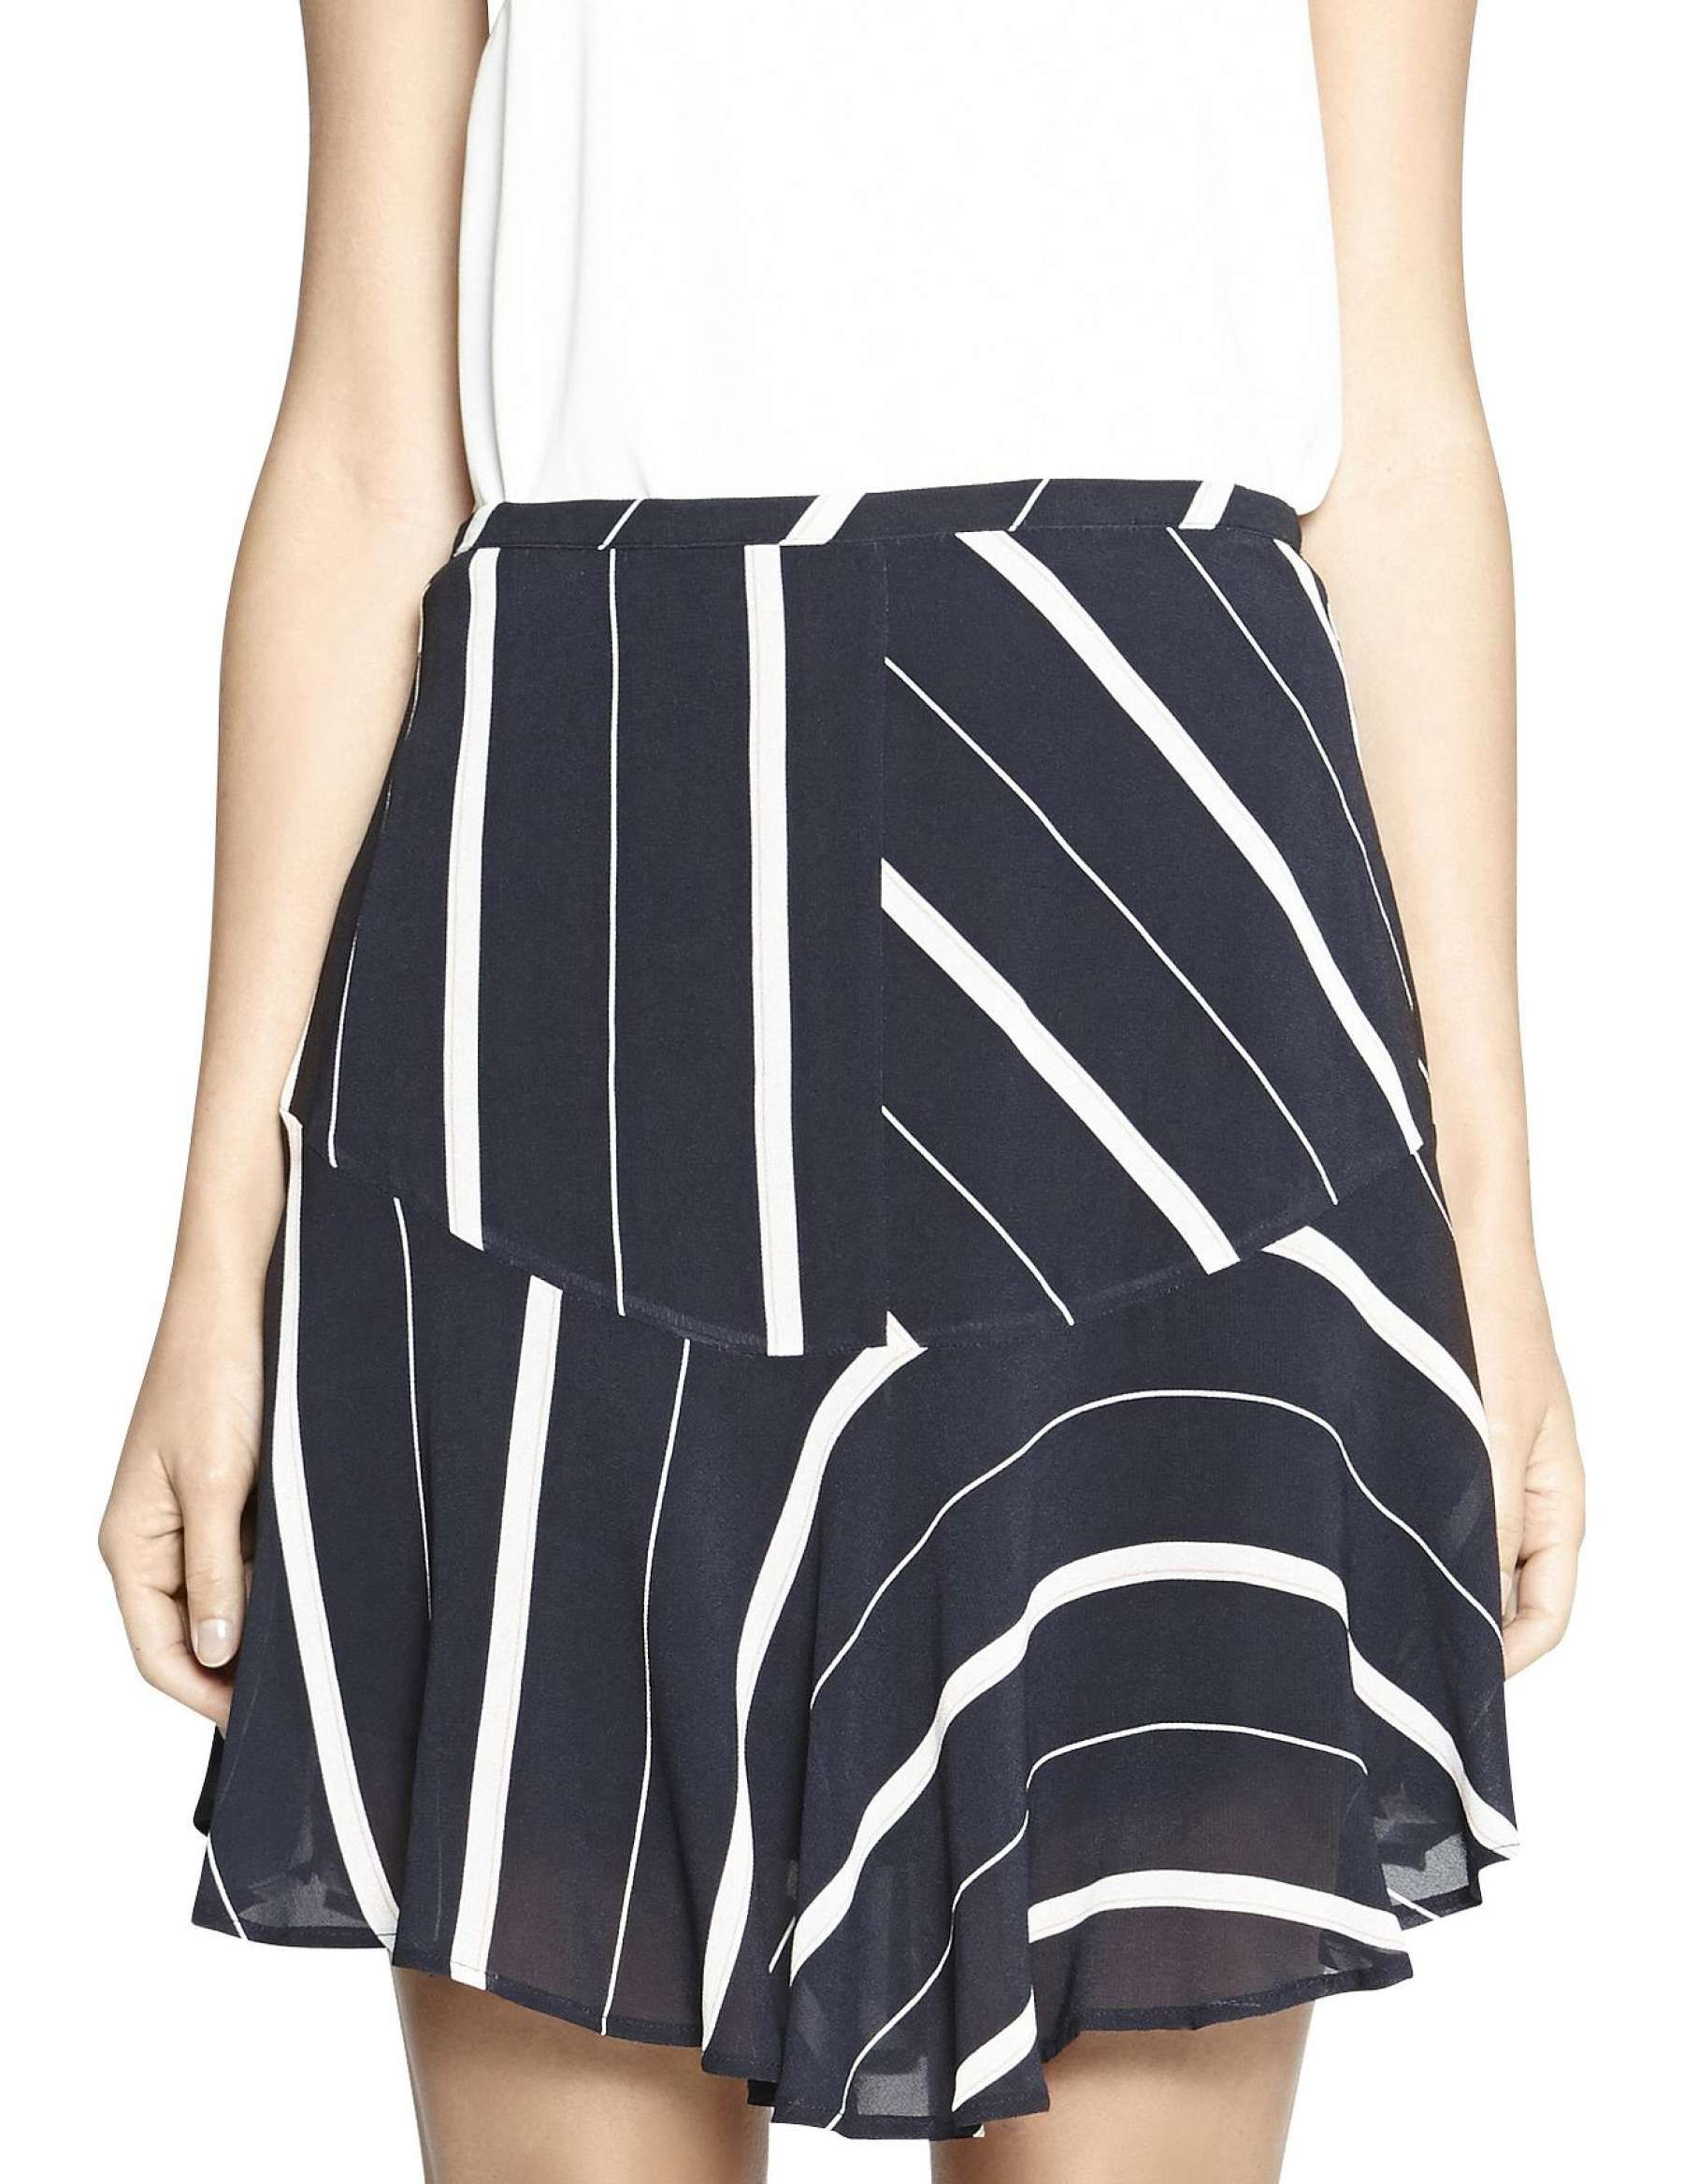 David Jones CAMILLA AND MARC Diffuse Skirt Fashion